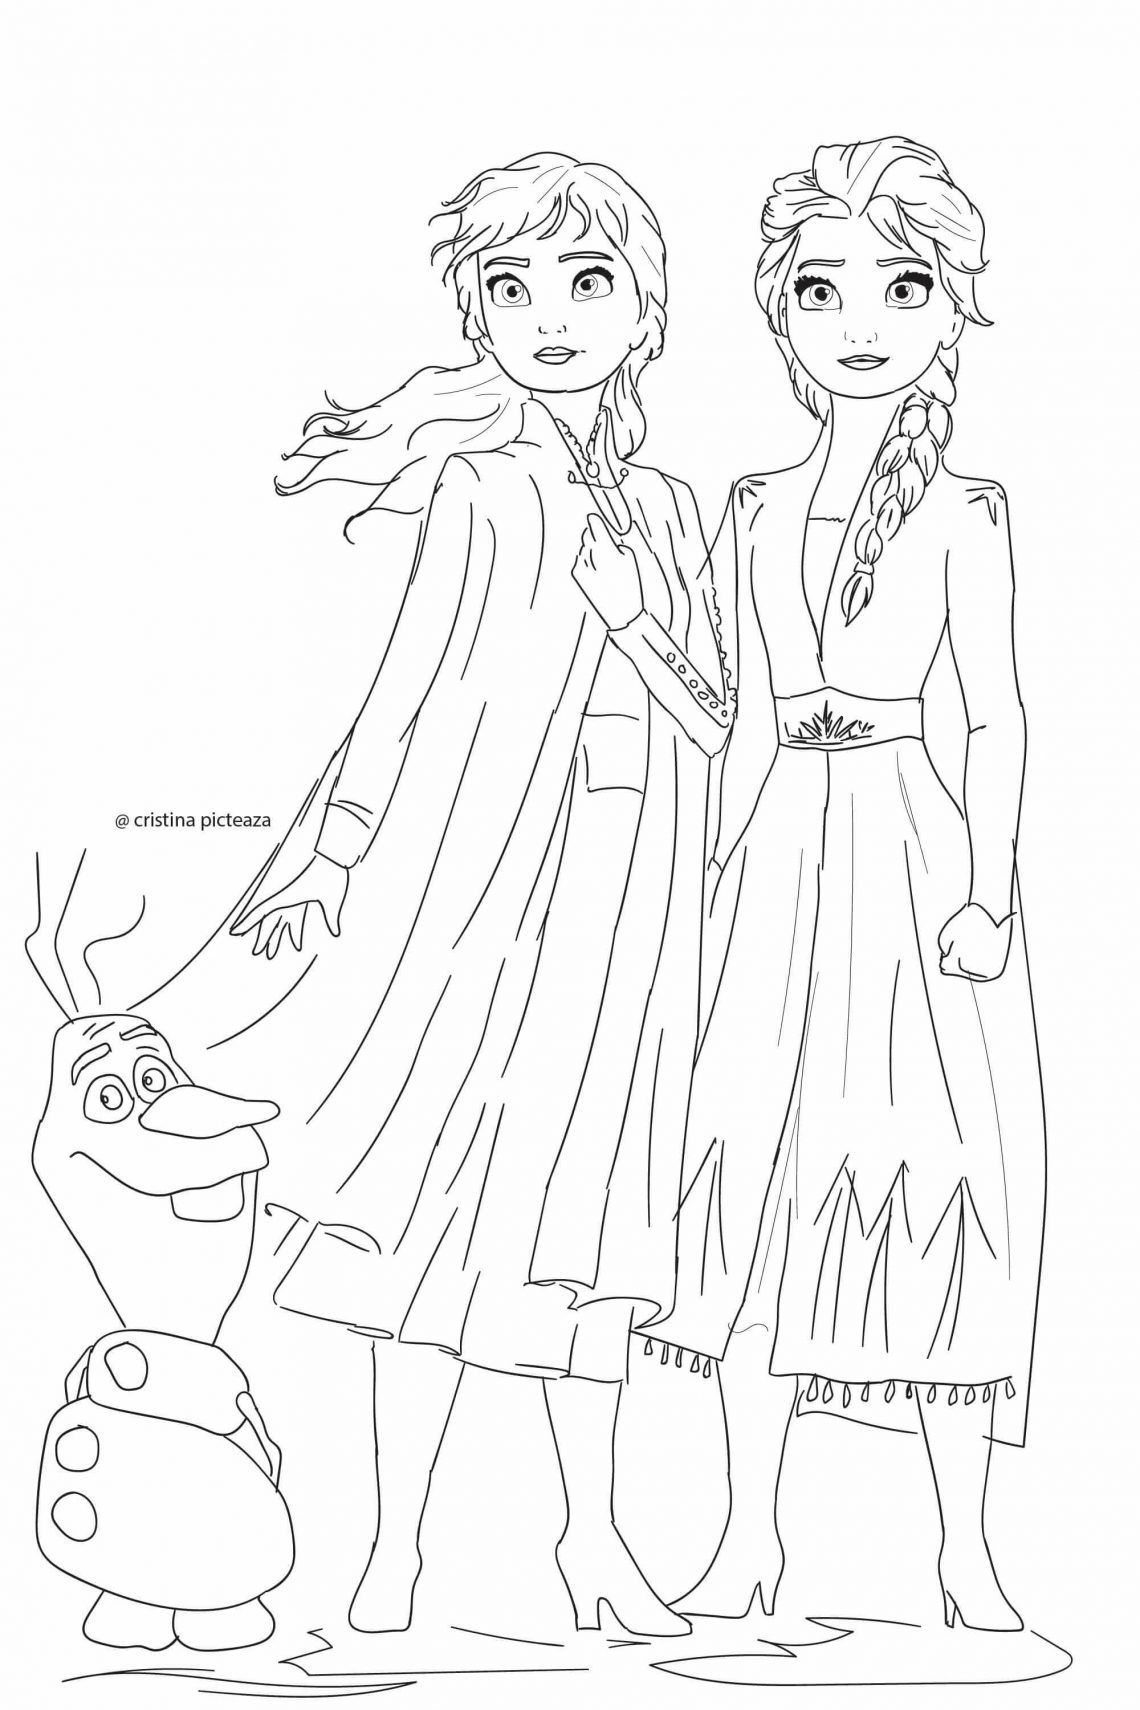 Frozen 2 Coloring Pages Elsa And Anna Coloring Elsa Coloring Pages Disney Princess Coloring Pages Frozen Coloring Pages